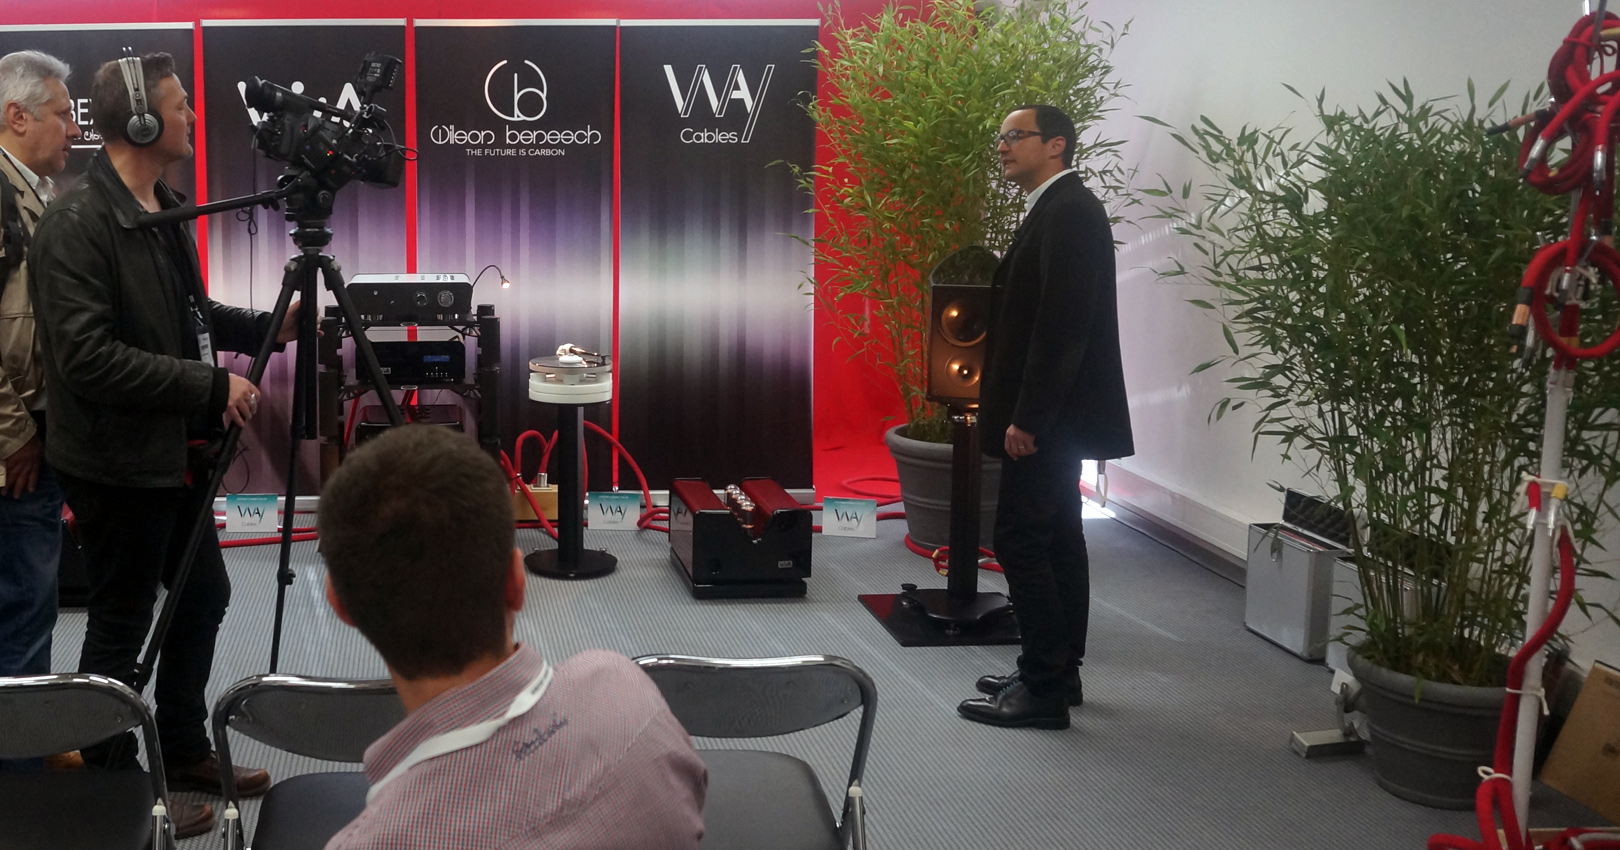 WAY Cables, Viva Audio, Wilson Benesch and Ibex Audio at High End Show in Munich 2016